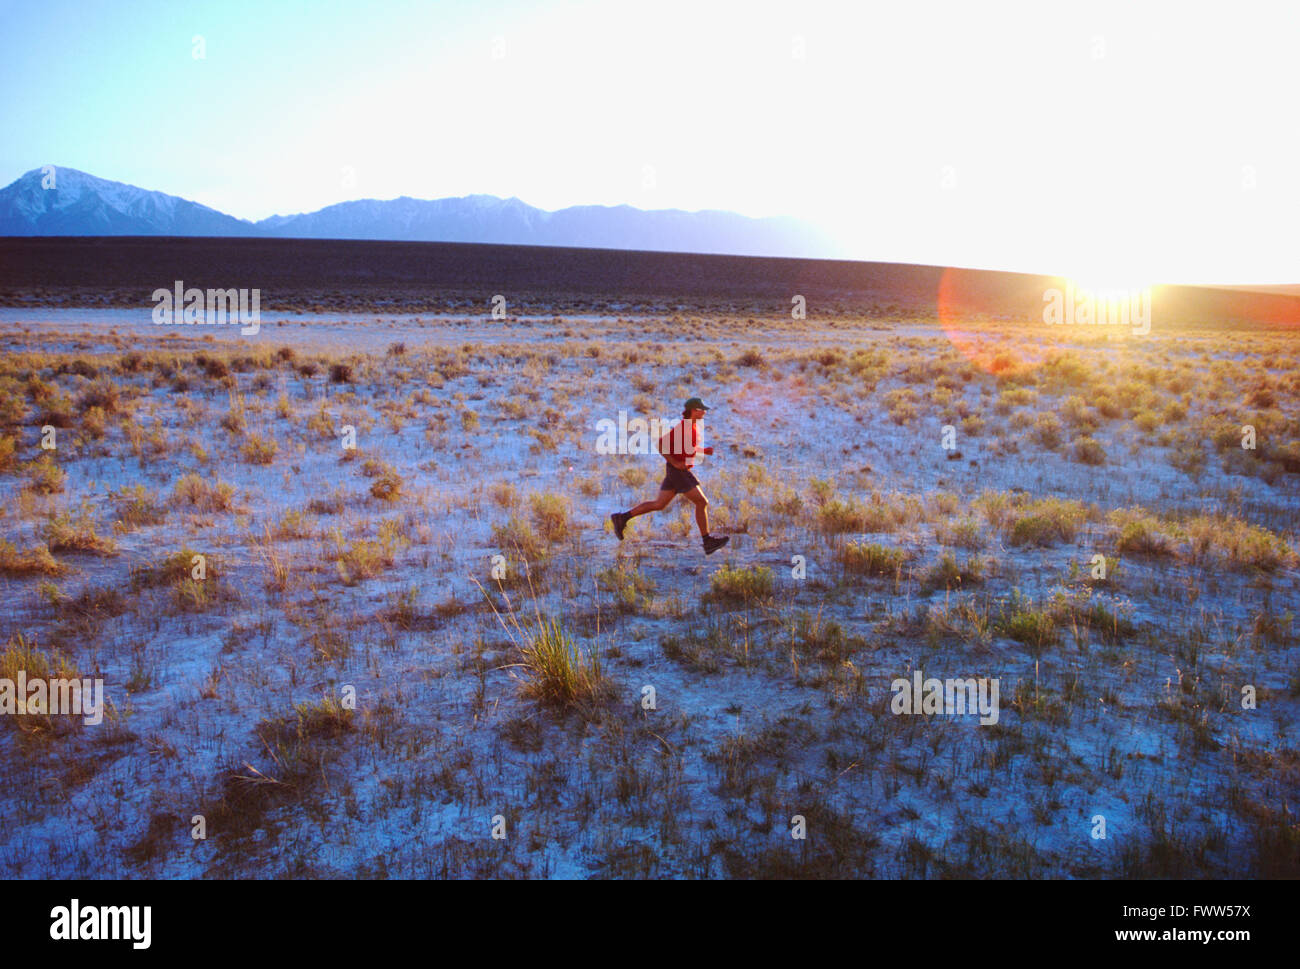 Fit young male athlete trail runner in Sierra Nevada foothills at sunset - Stock Image